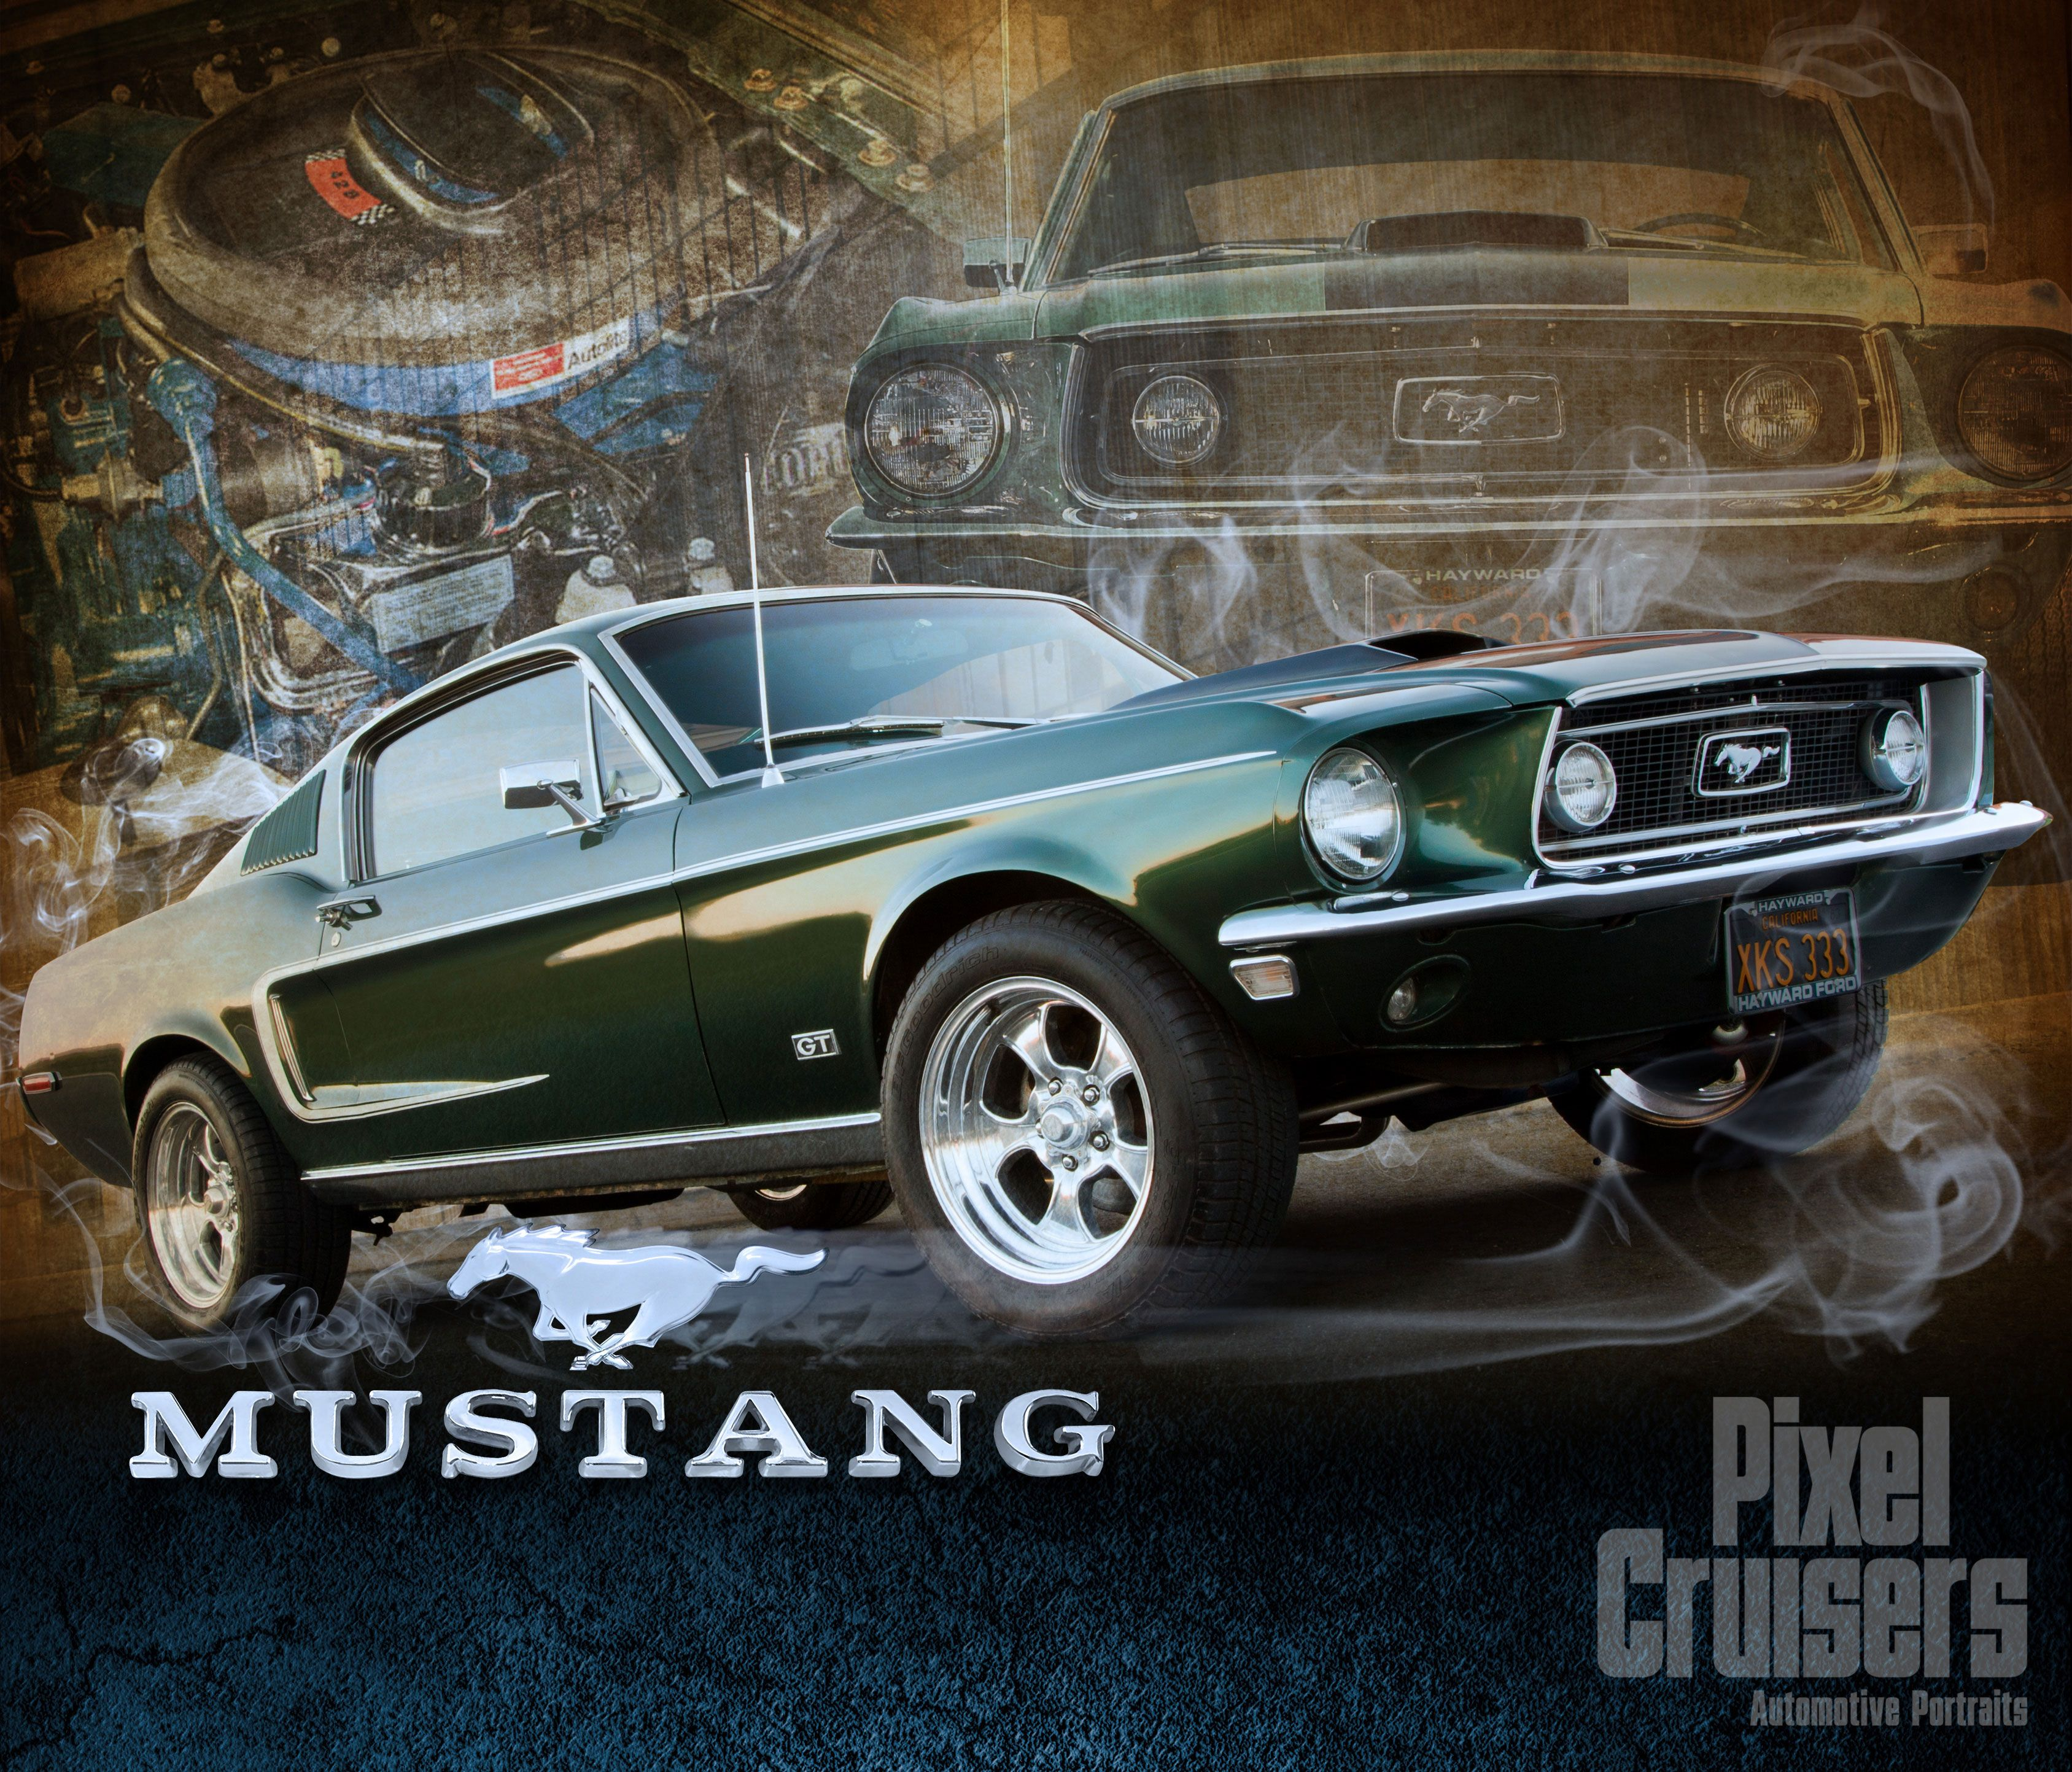 Mustang  American Muscle  calendar page from the 2016 Ou0027Reilly Auto Parts® & Mustang